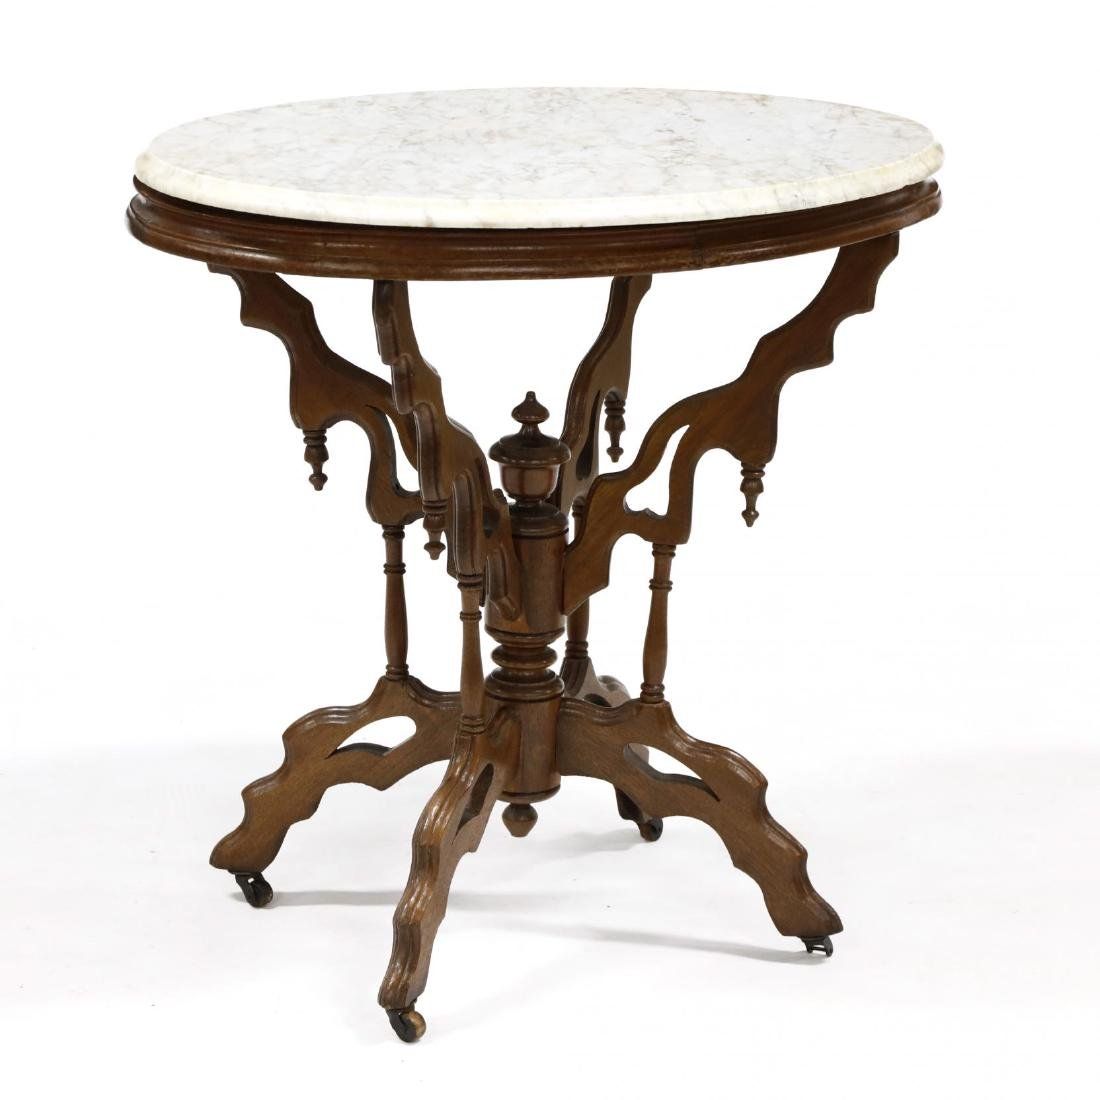 Victorian Marble Top Parlor Table - 4